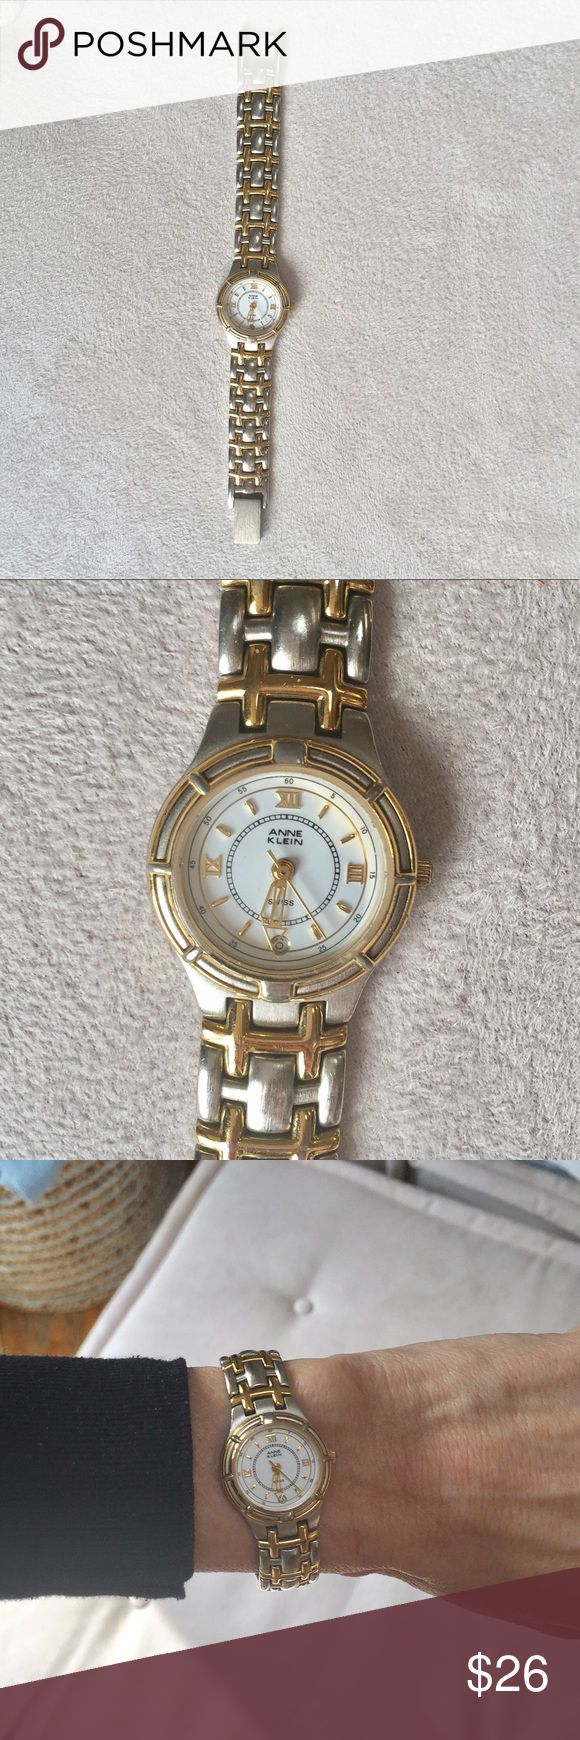 """Anne Klein Two Tone Watch Classic watch with silver and gold-tone armband, white face and date window.  Good used condition- a few faint scratches on the links, light scratches on the clasp & a barely-seen tiny nick on the edge of the glass between the """"2"""" and """"3"""" (last photo), reflected in low price! Measures 1"""" circle & enclosure, 6"""" end to end. Works perfectly, just needs a new battery! Anne Klein Accessories Watches"""